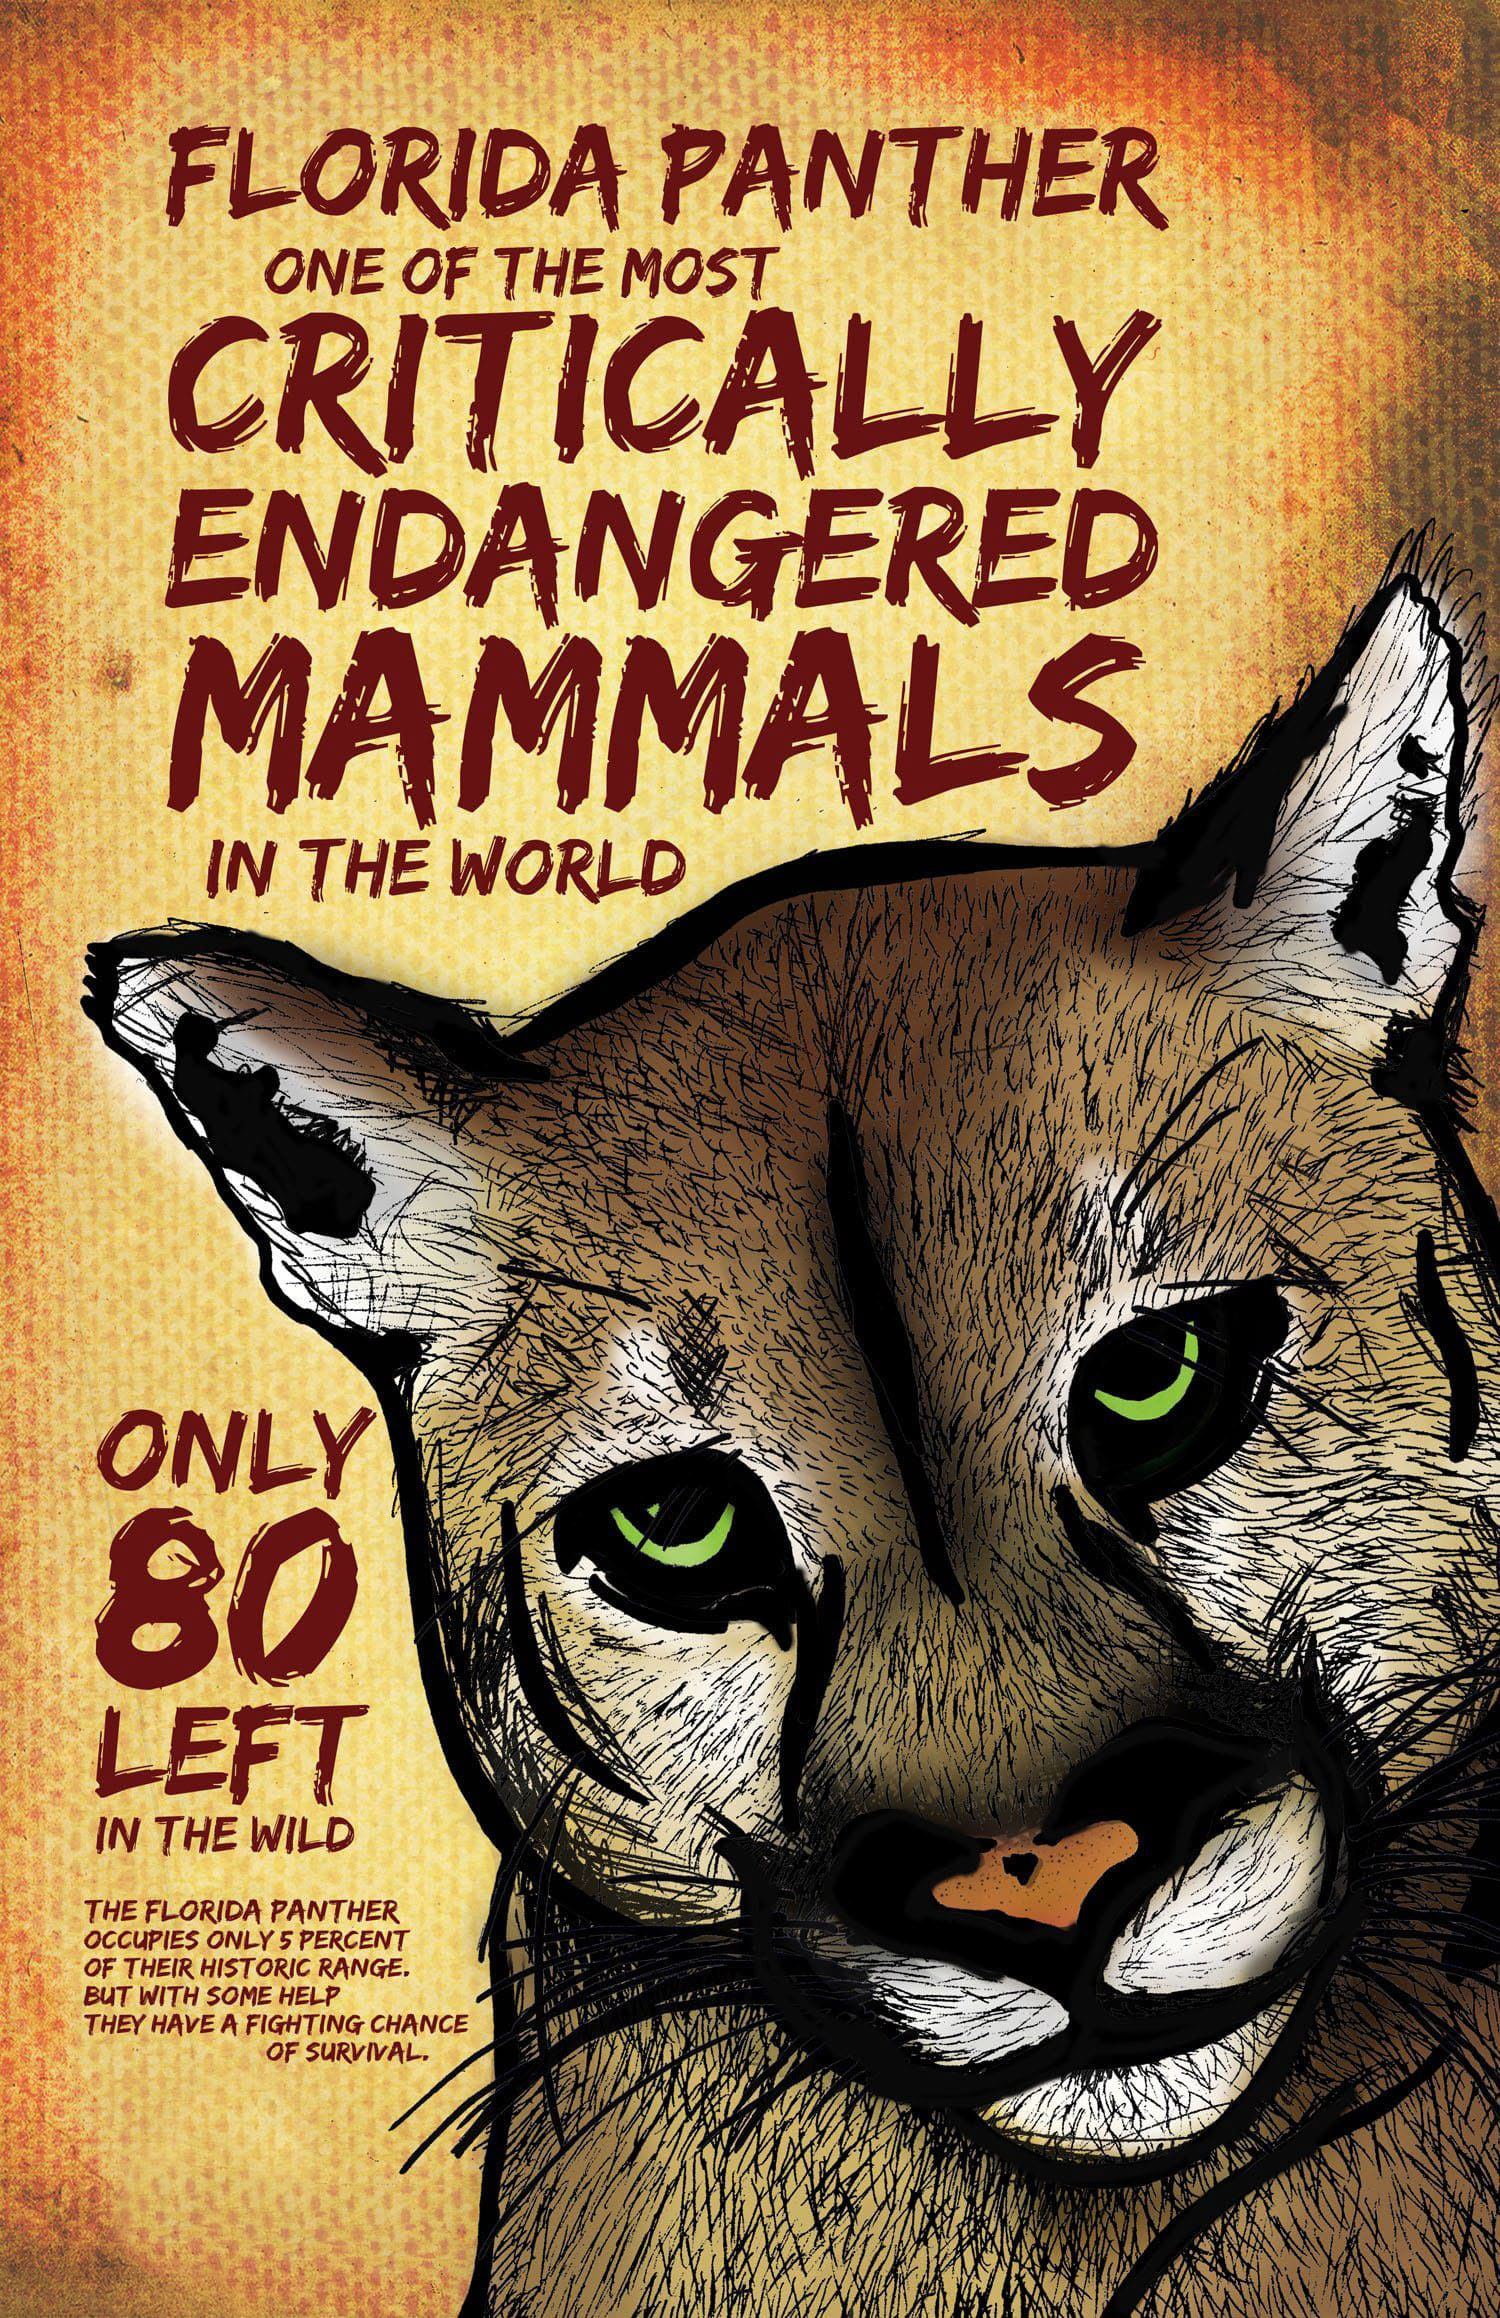 Florida Panther Endangered Species Poster Endangered